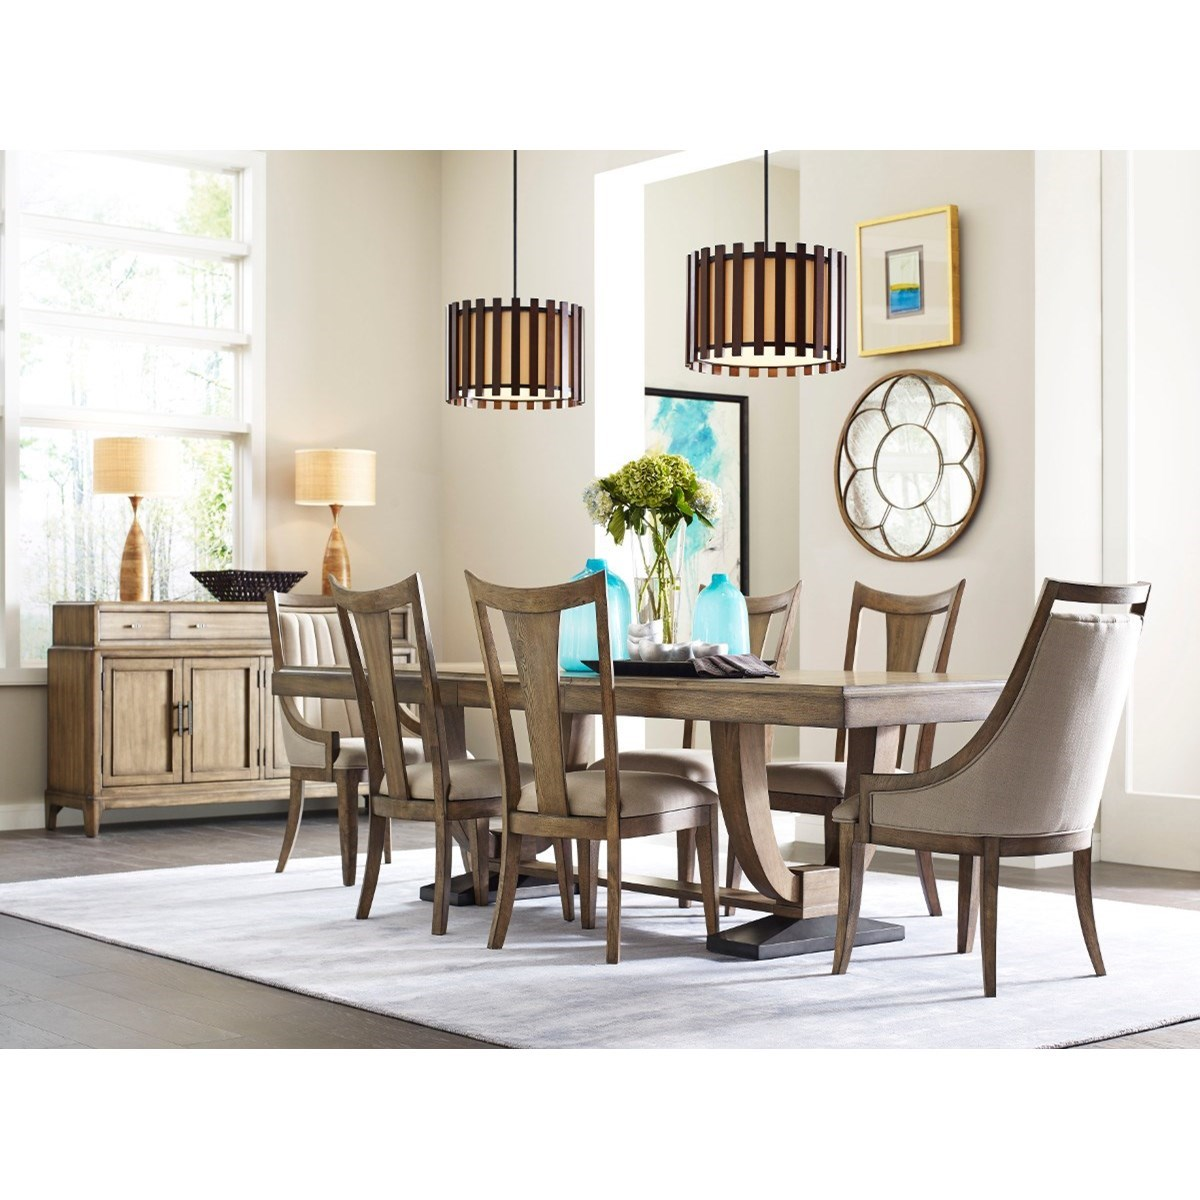 american drew evoke formal dining room group wayside american drew dining room furniture trend home design